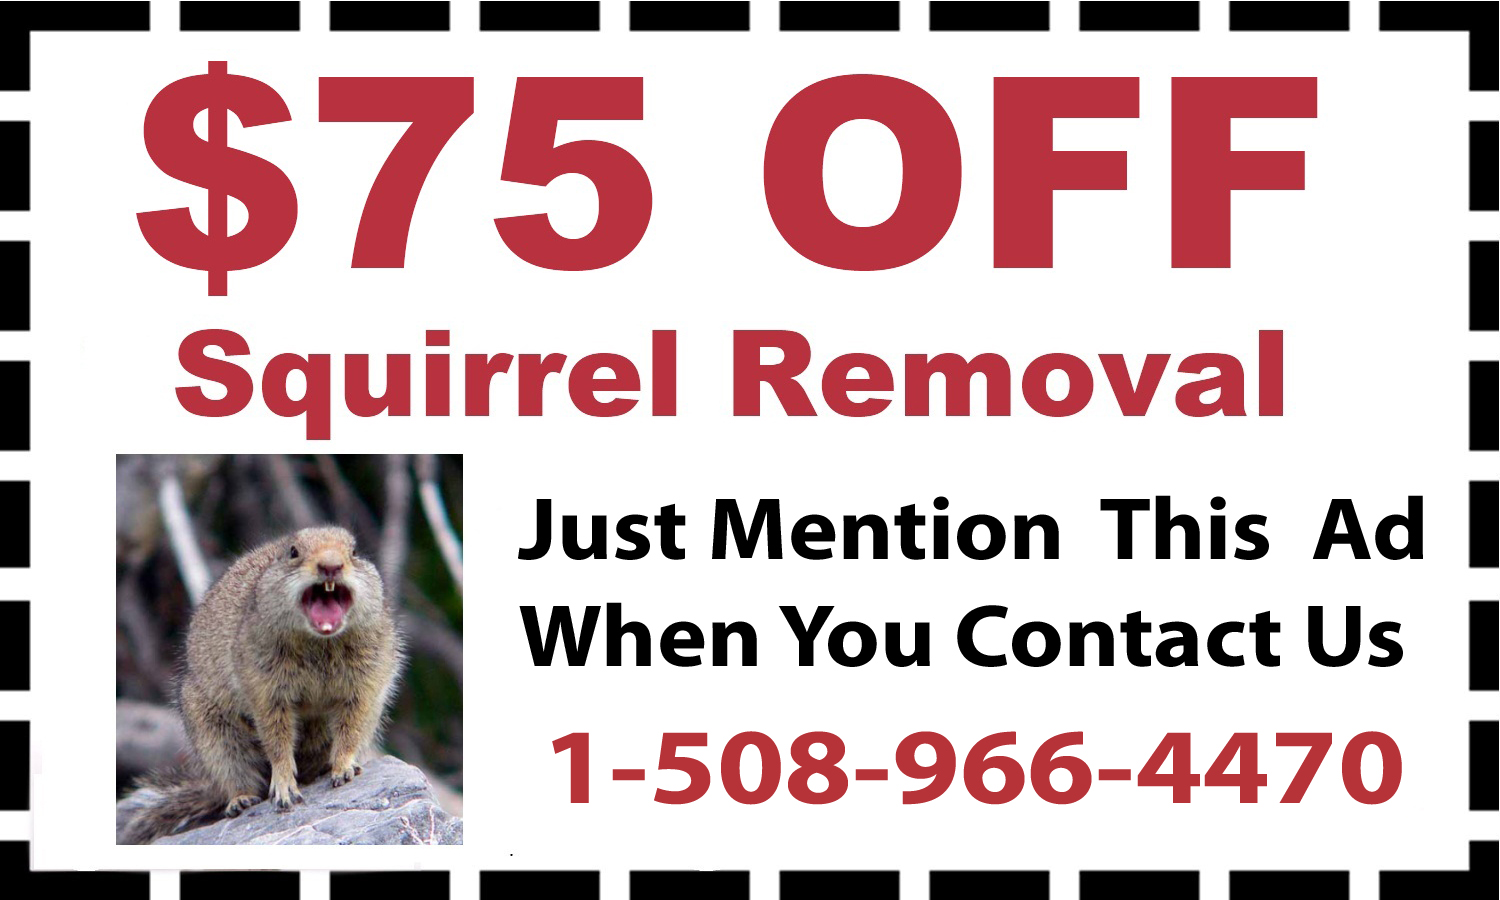 Squirrel Removal Services in Attleboro MA